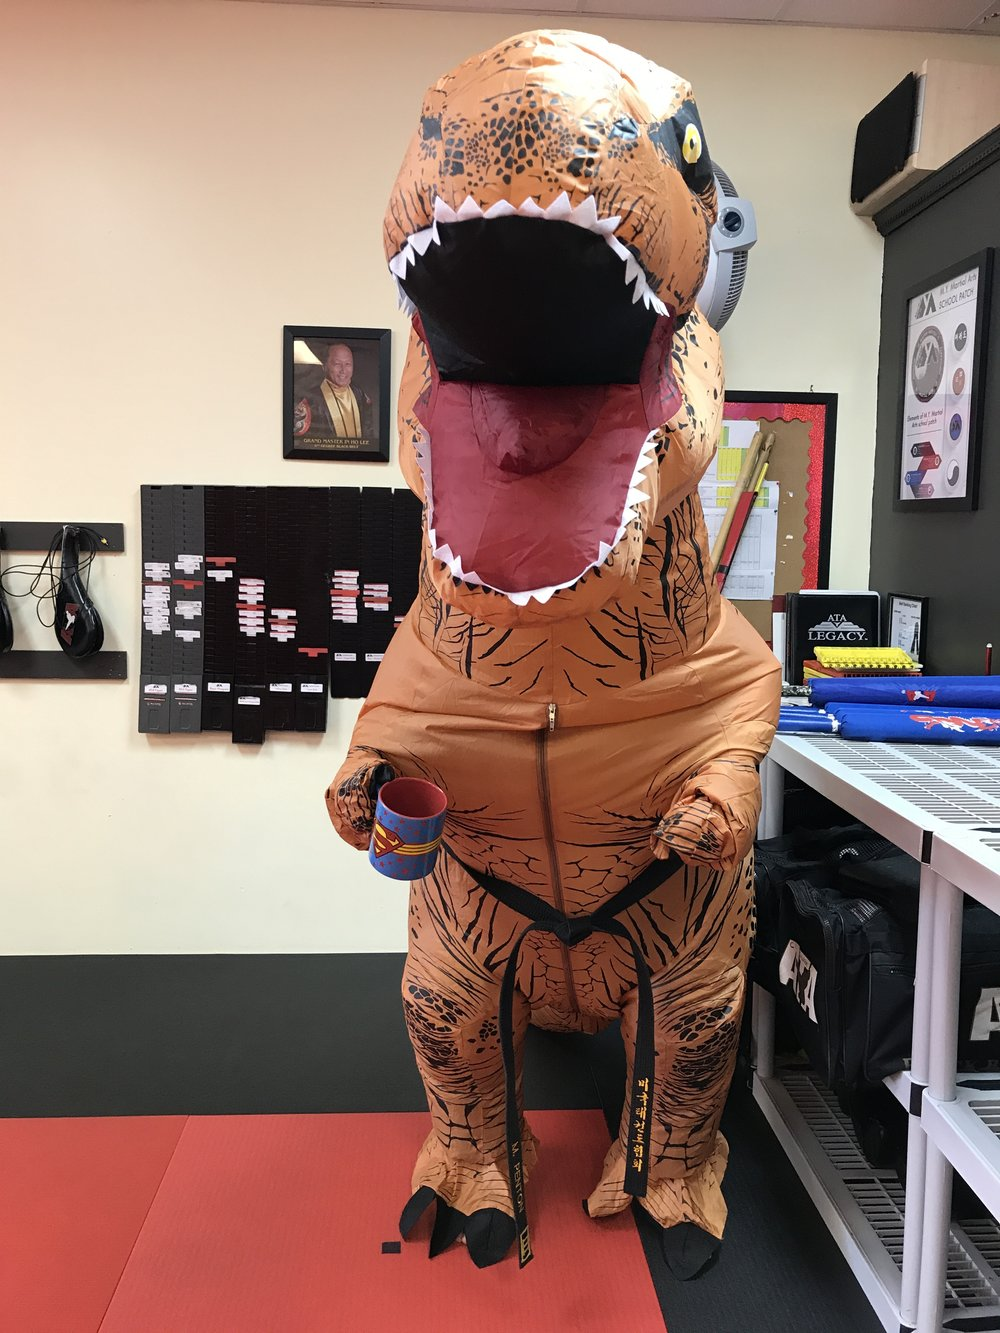 Taekwondosarus Rex Drinks Coffee